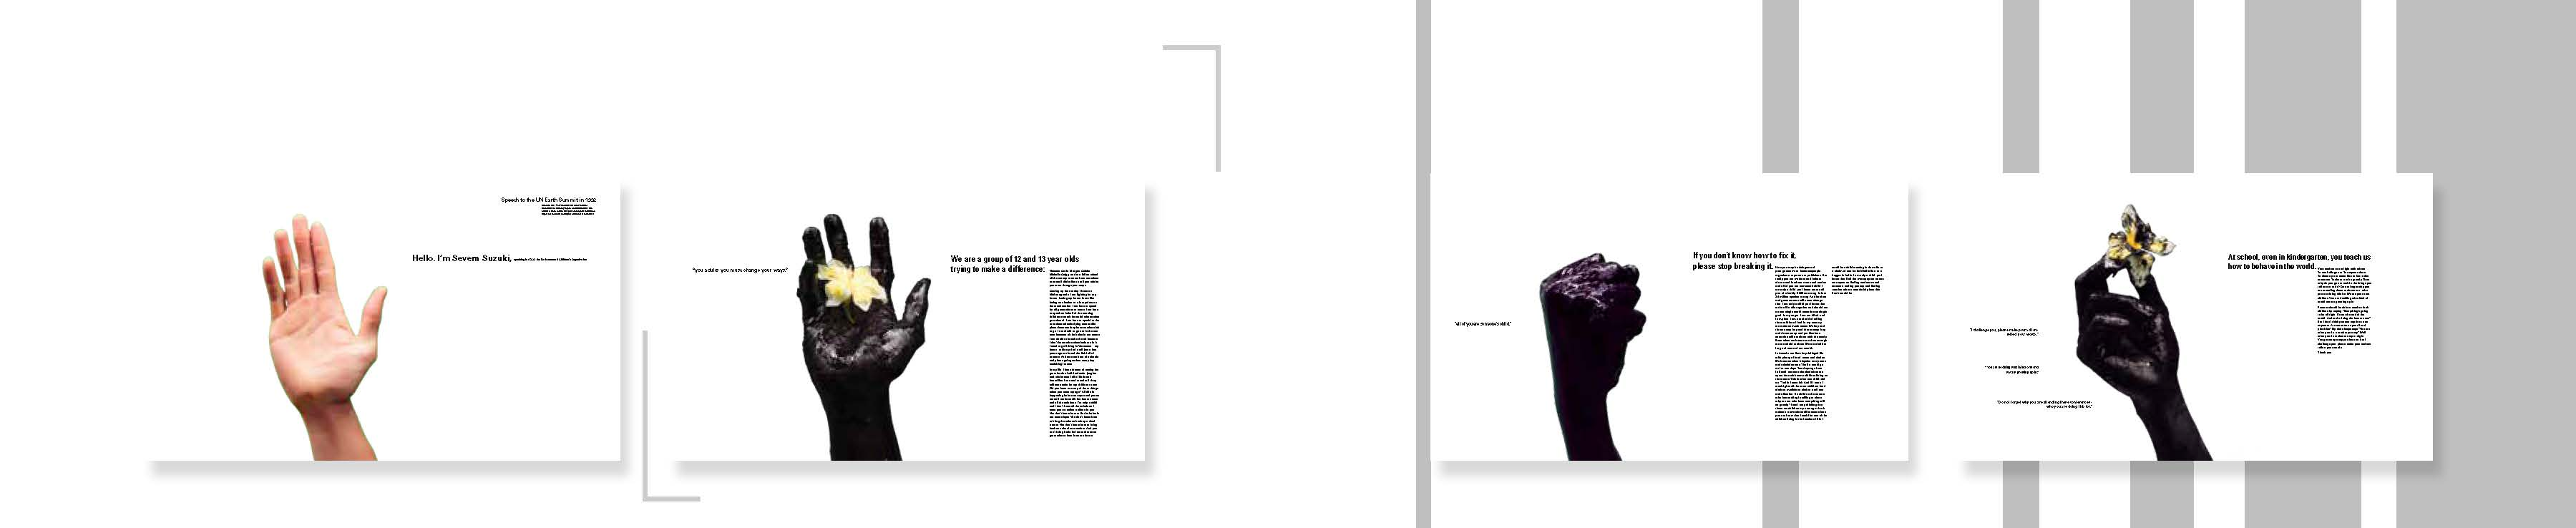 small thumbnail images of magazine spreads with hands and text on each page